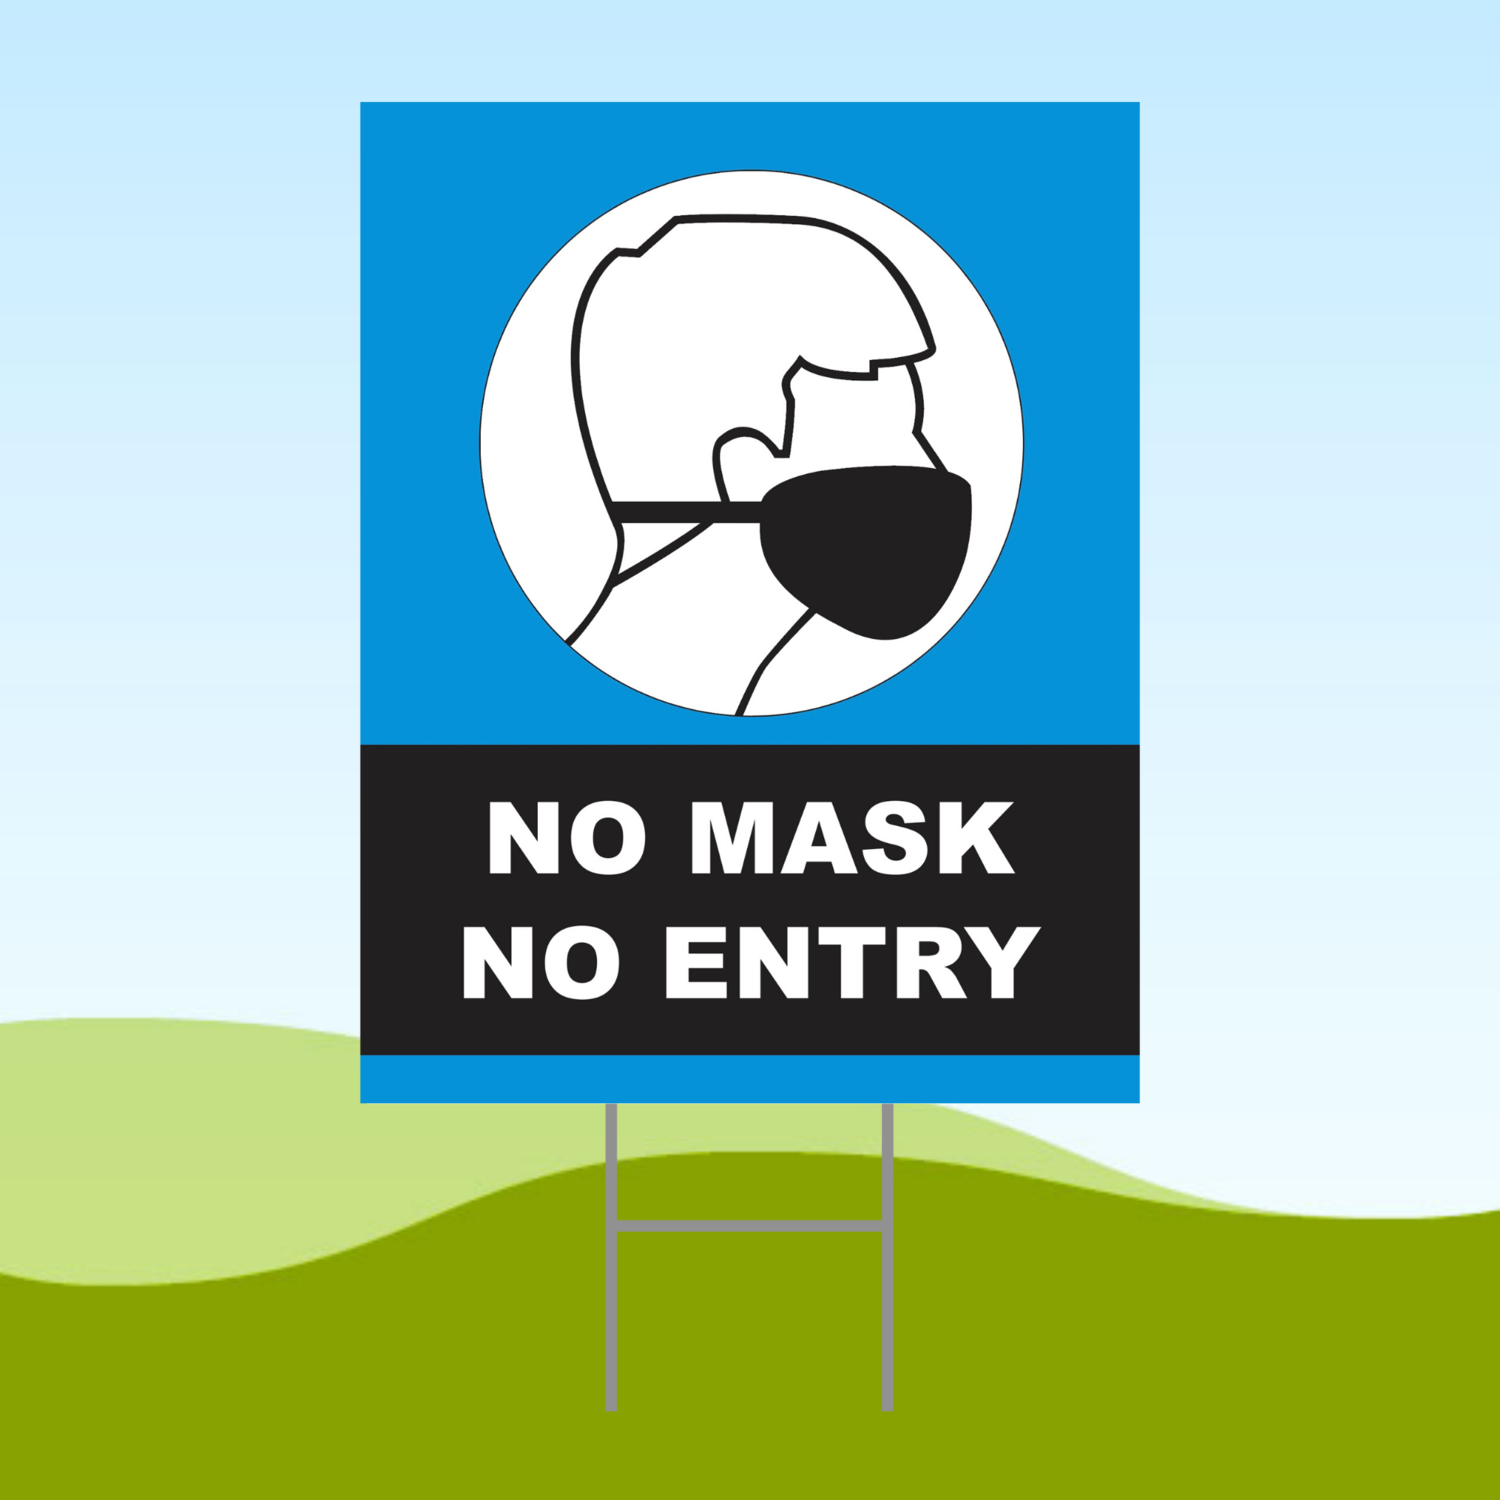 No Mask No Entry Blue 18x24 Yard Sign WITH STAKE Corrugated Plastic Bandit